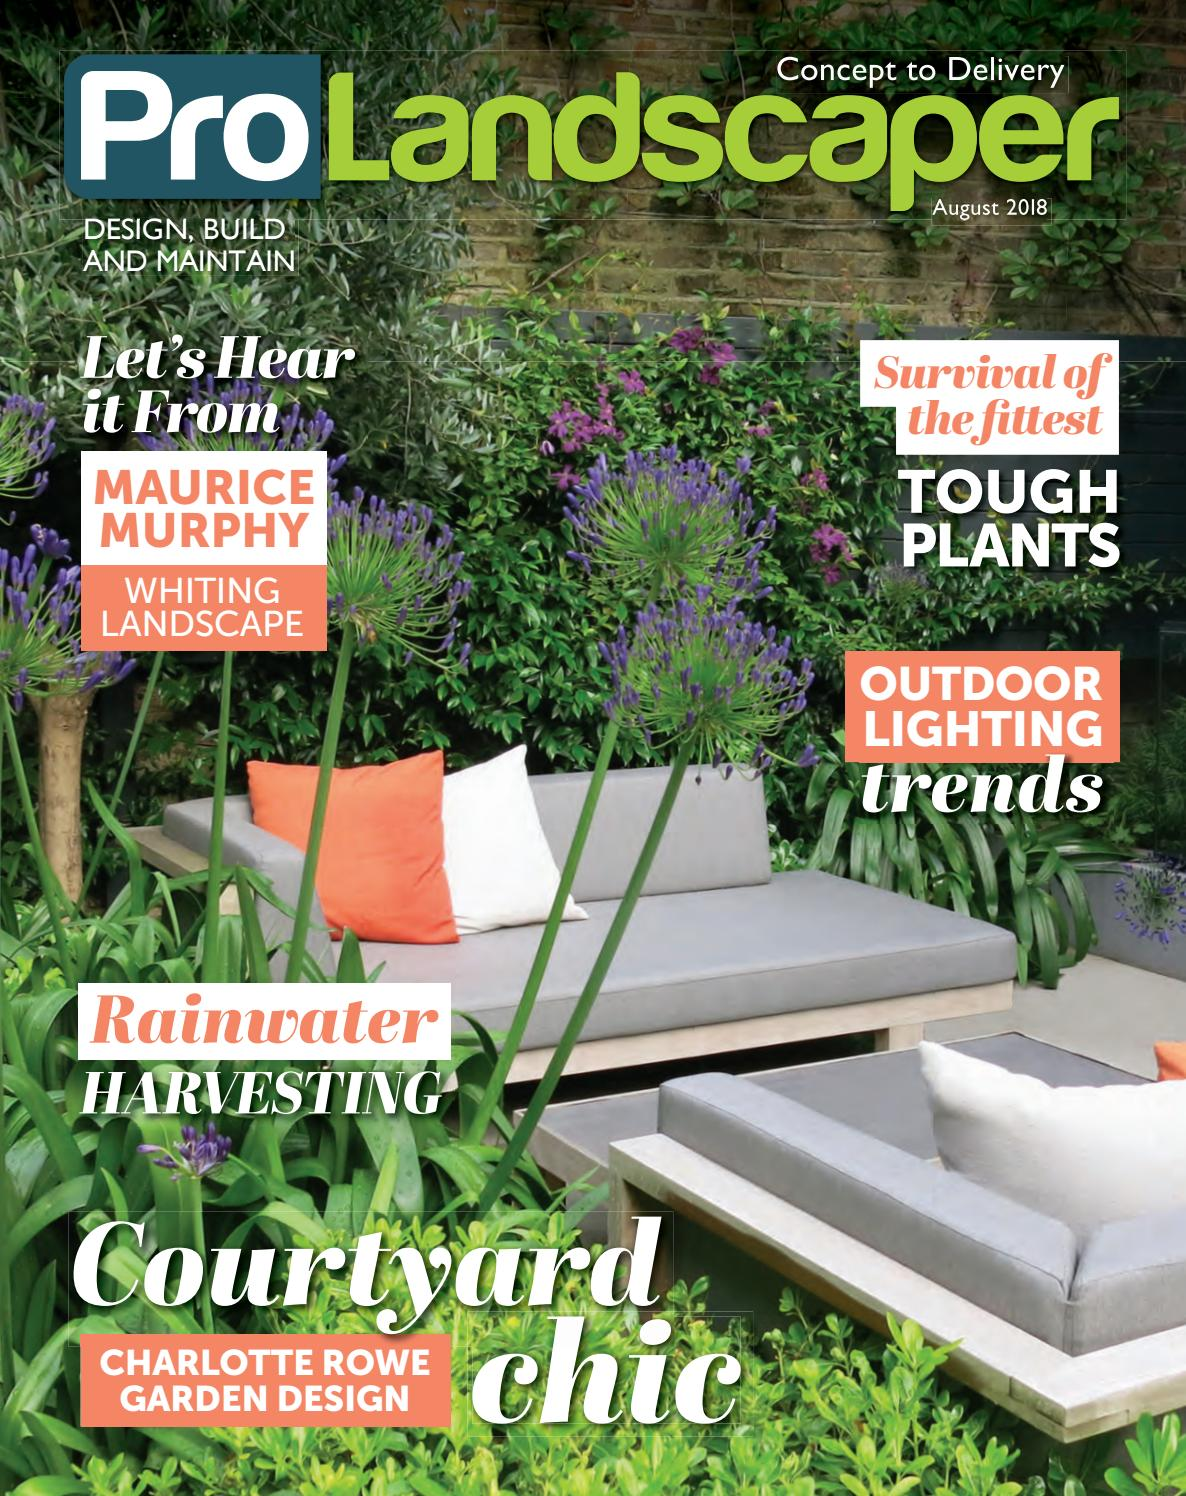 Pro Landscaper August 2018 By Eljays44 Issuu